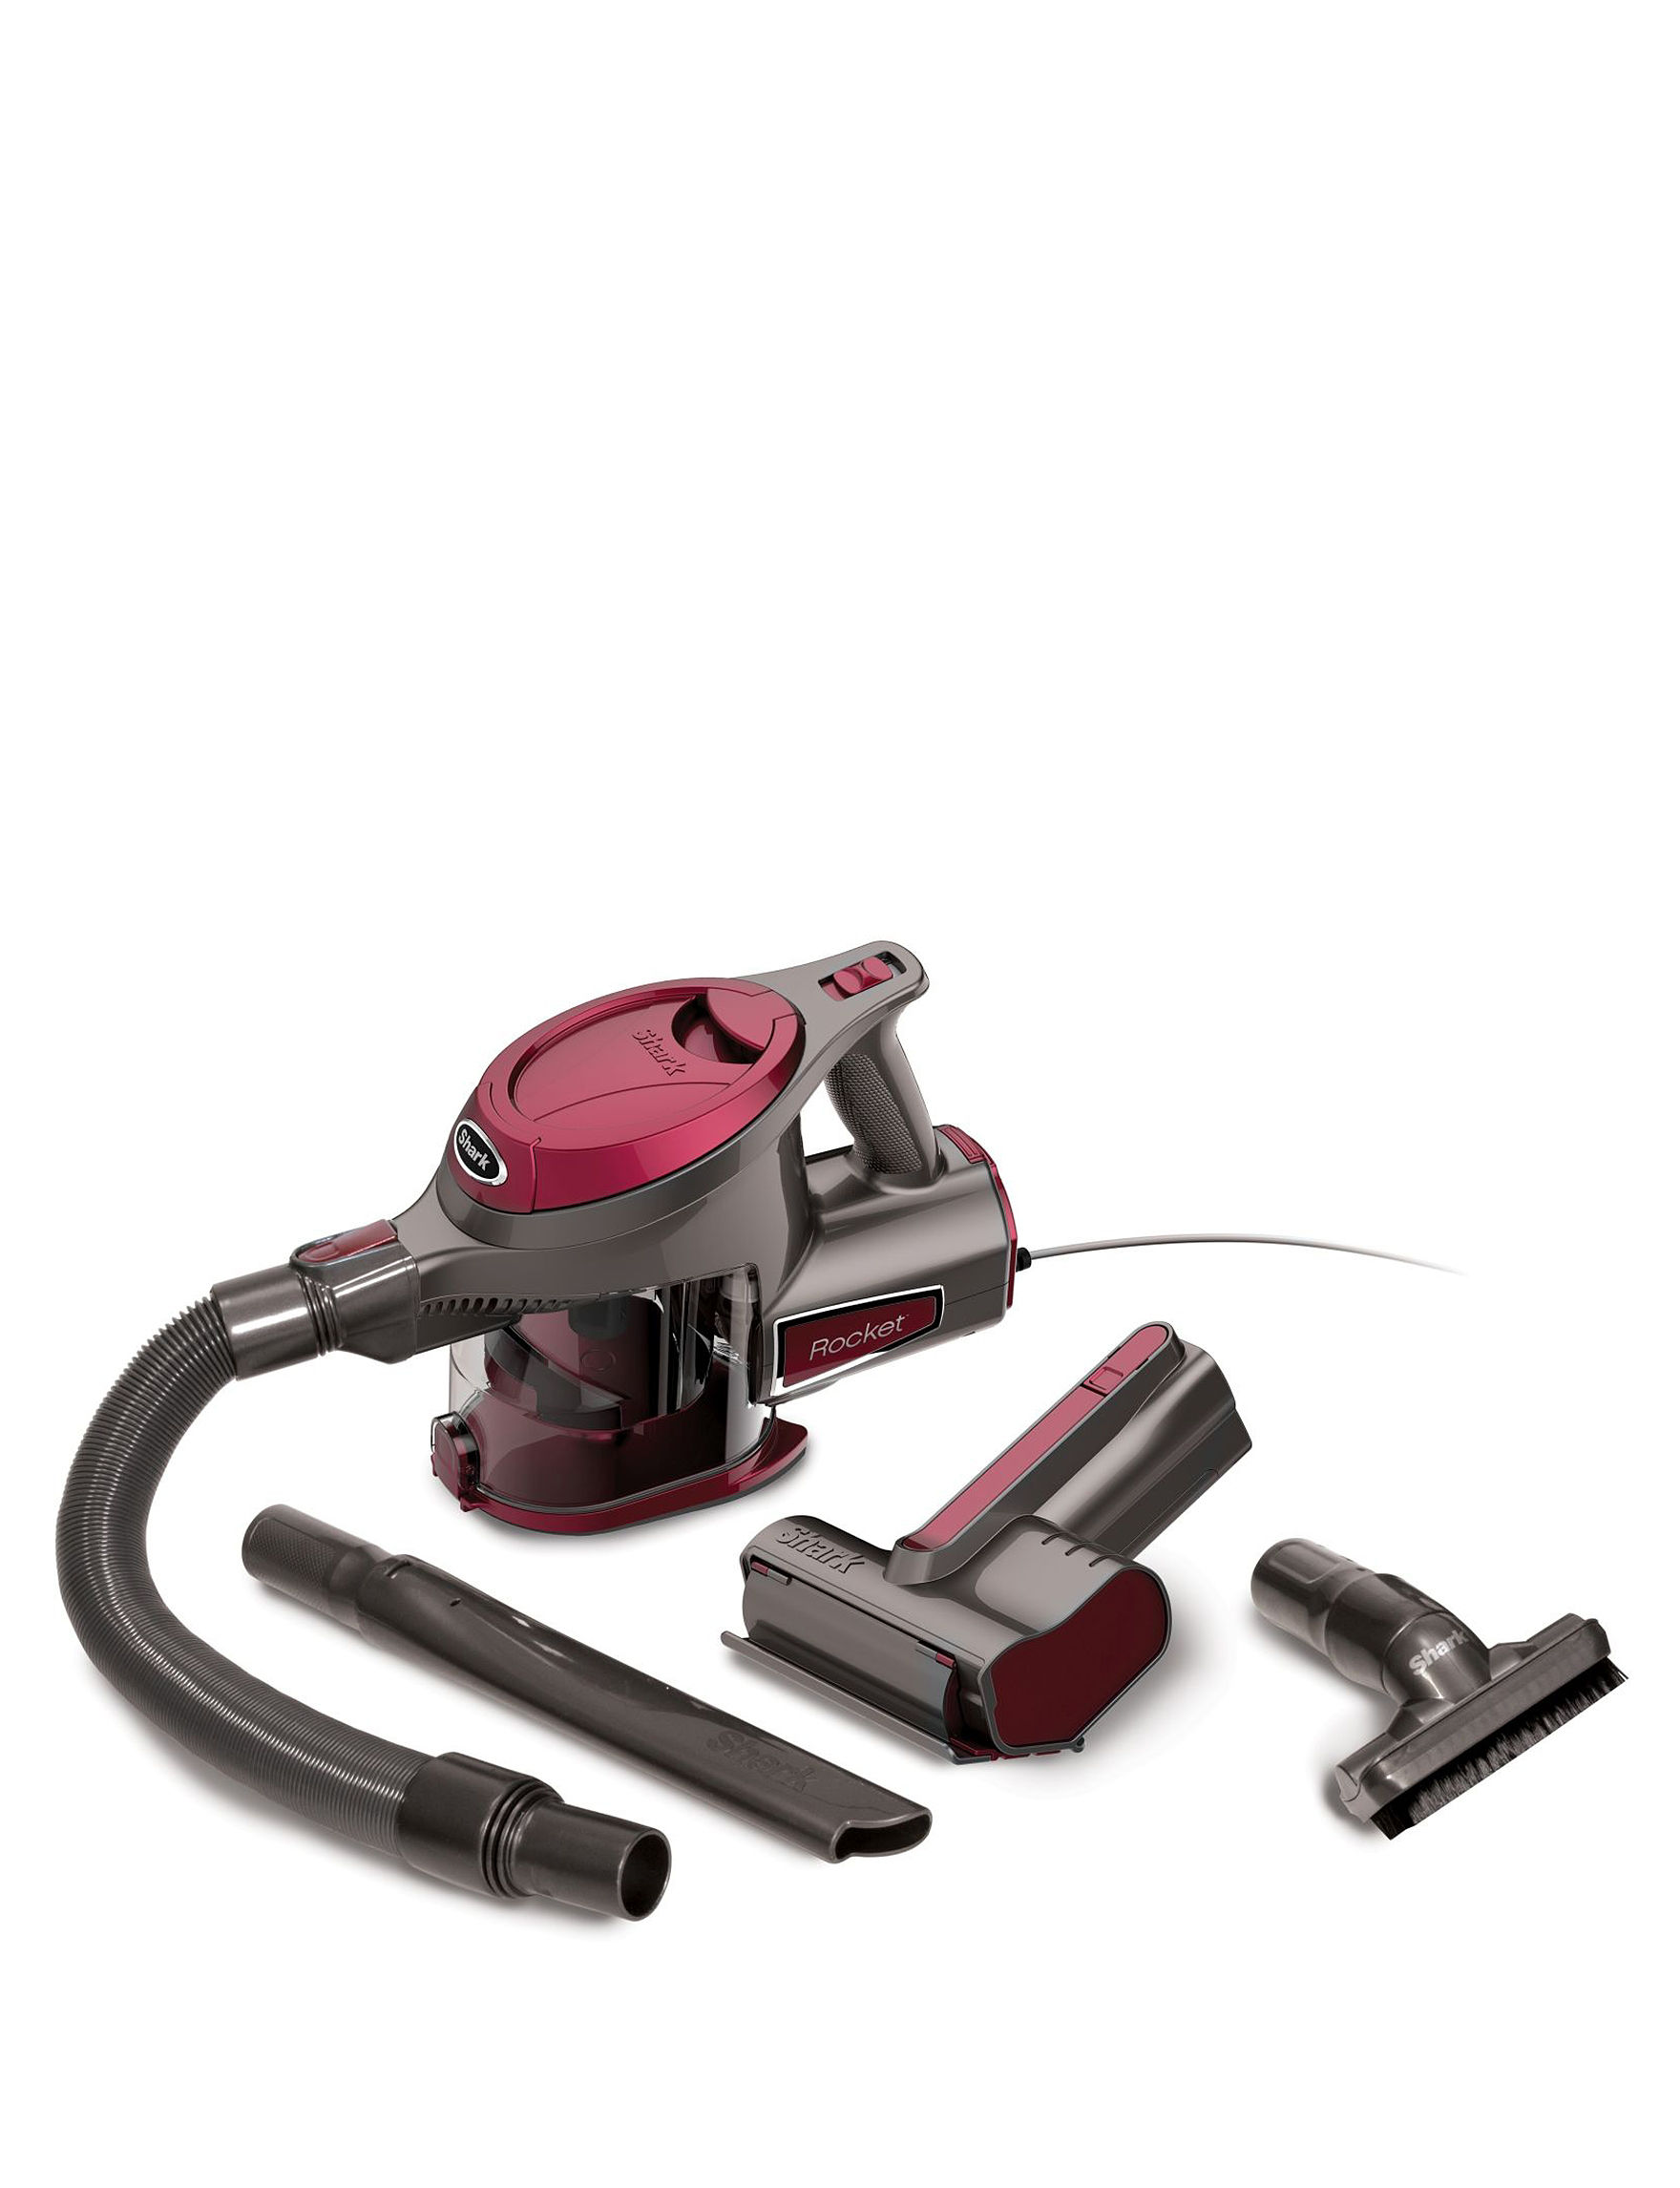 Shark Grey / Red Vacuums & Floor Care